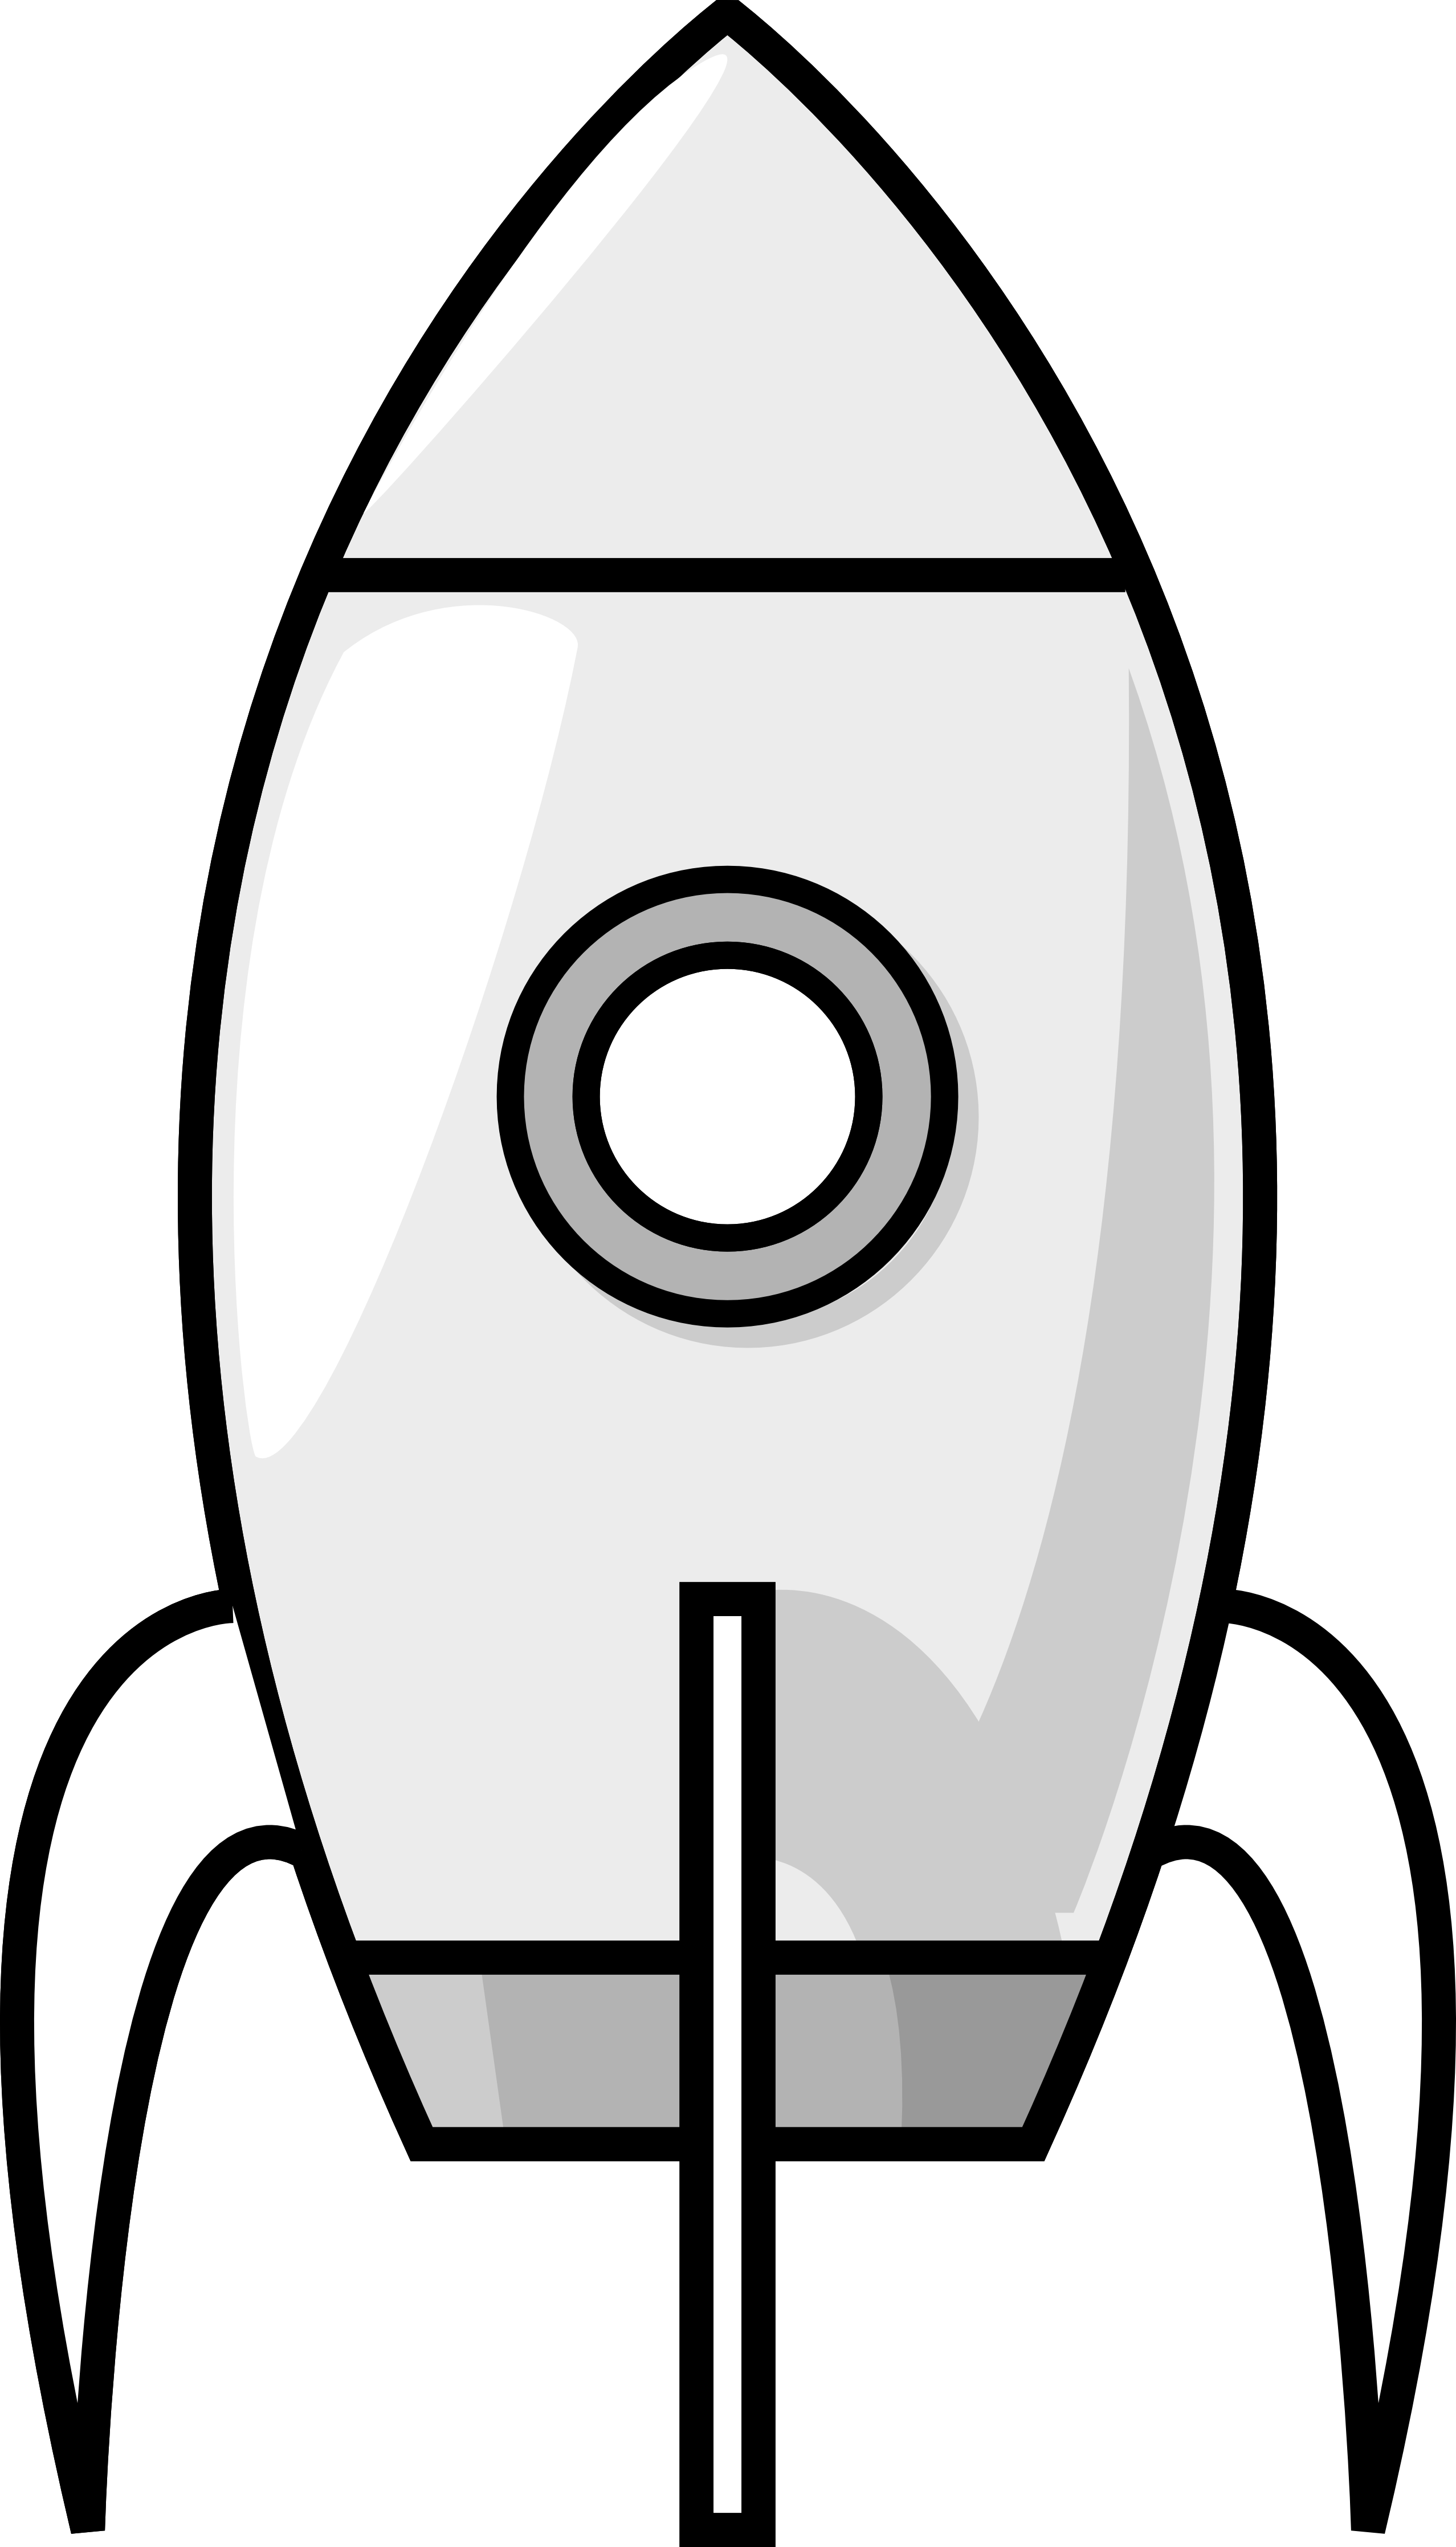 Rocketship clipart black and white. Rocket panda free images